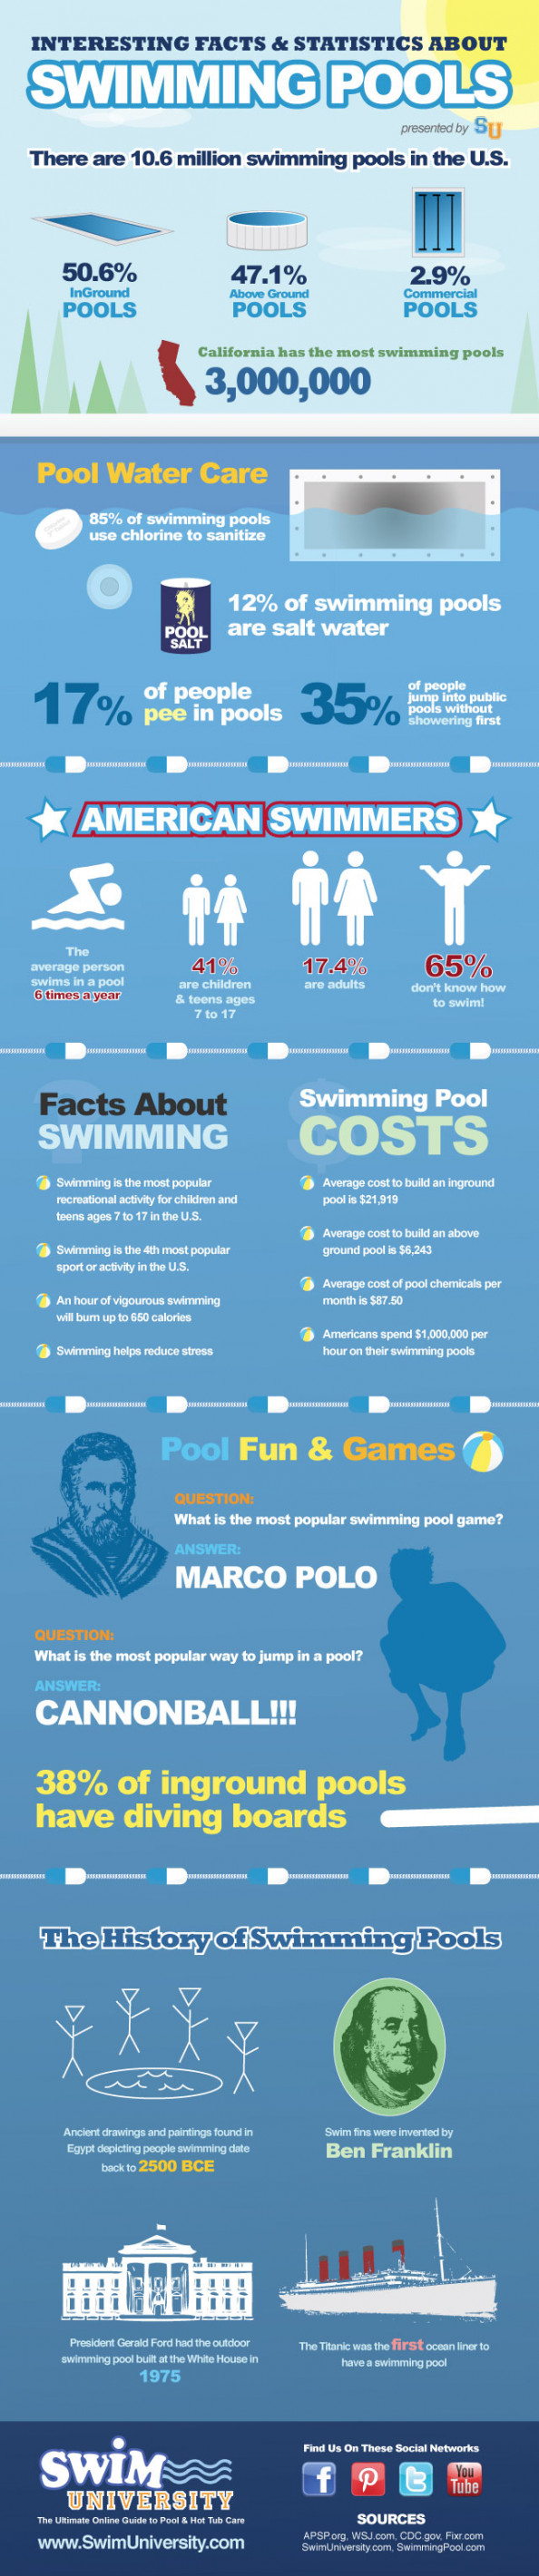 Interesting Facts & Statistics About Swimming Pools Infographic